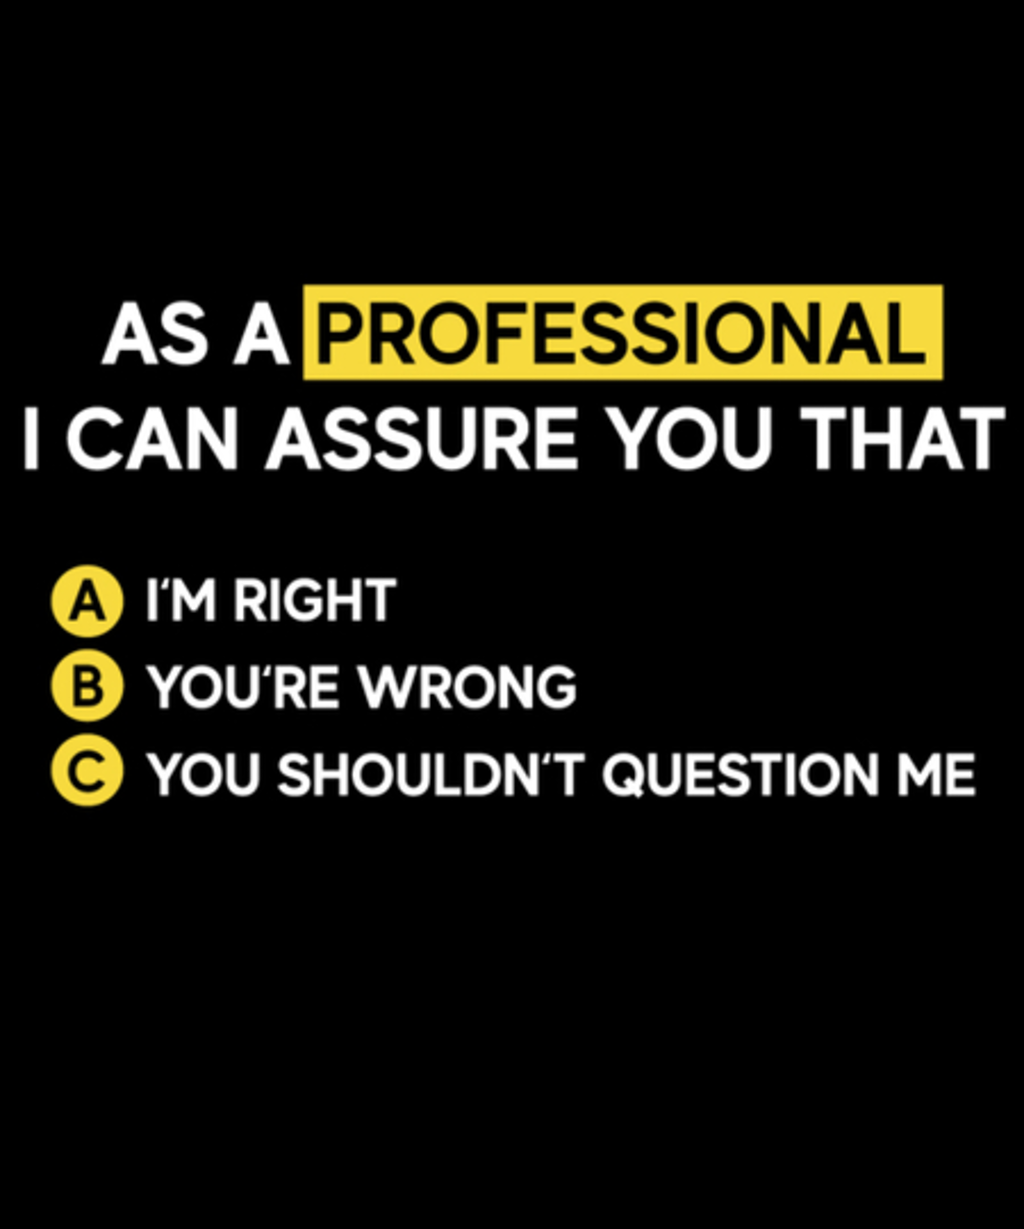 Qwertee: As a professional